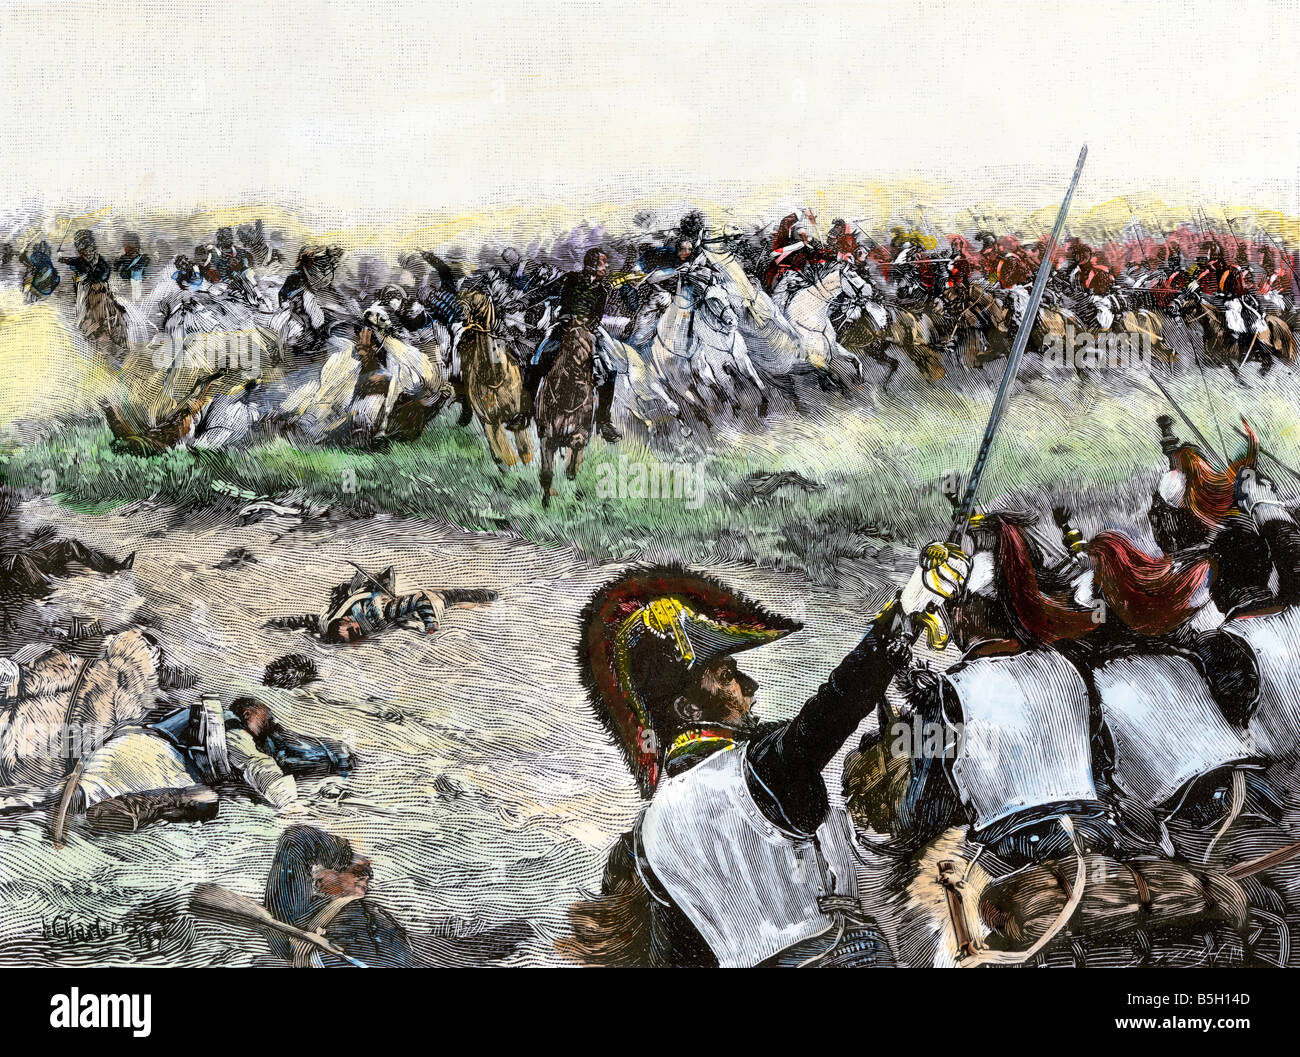 Cavalry charge during Napoleon's final battle at Waterloo 1815. Hand-colored halftone of an illustration - Stock Image